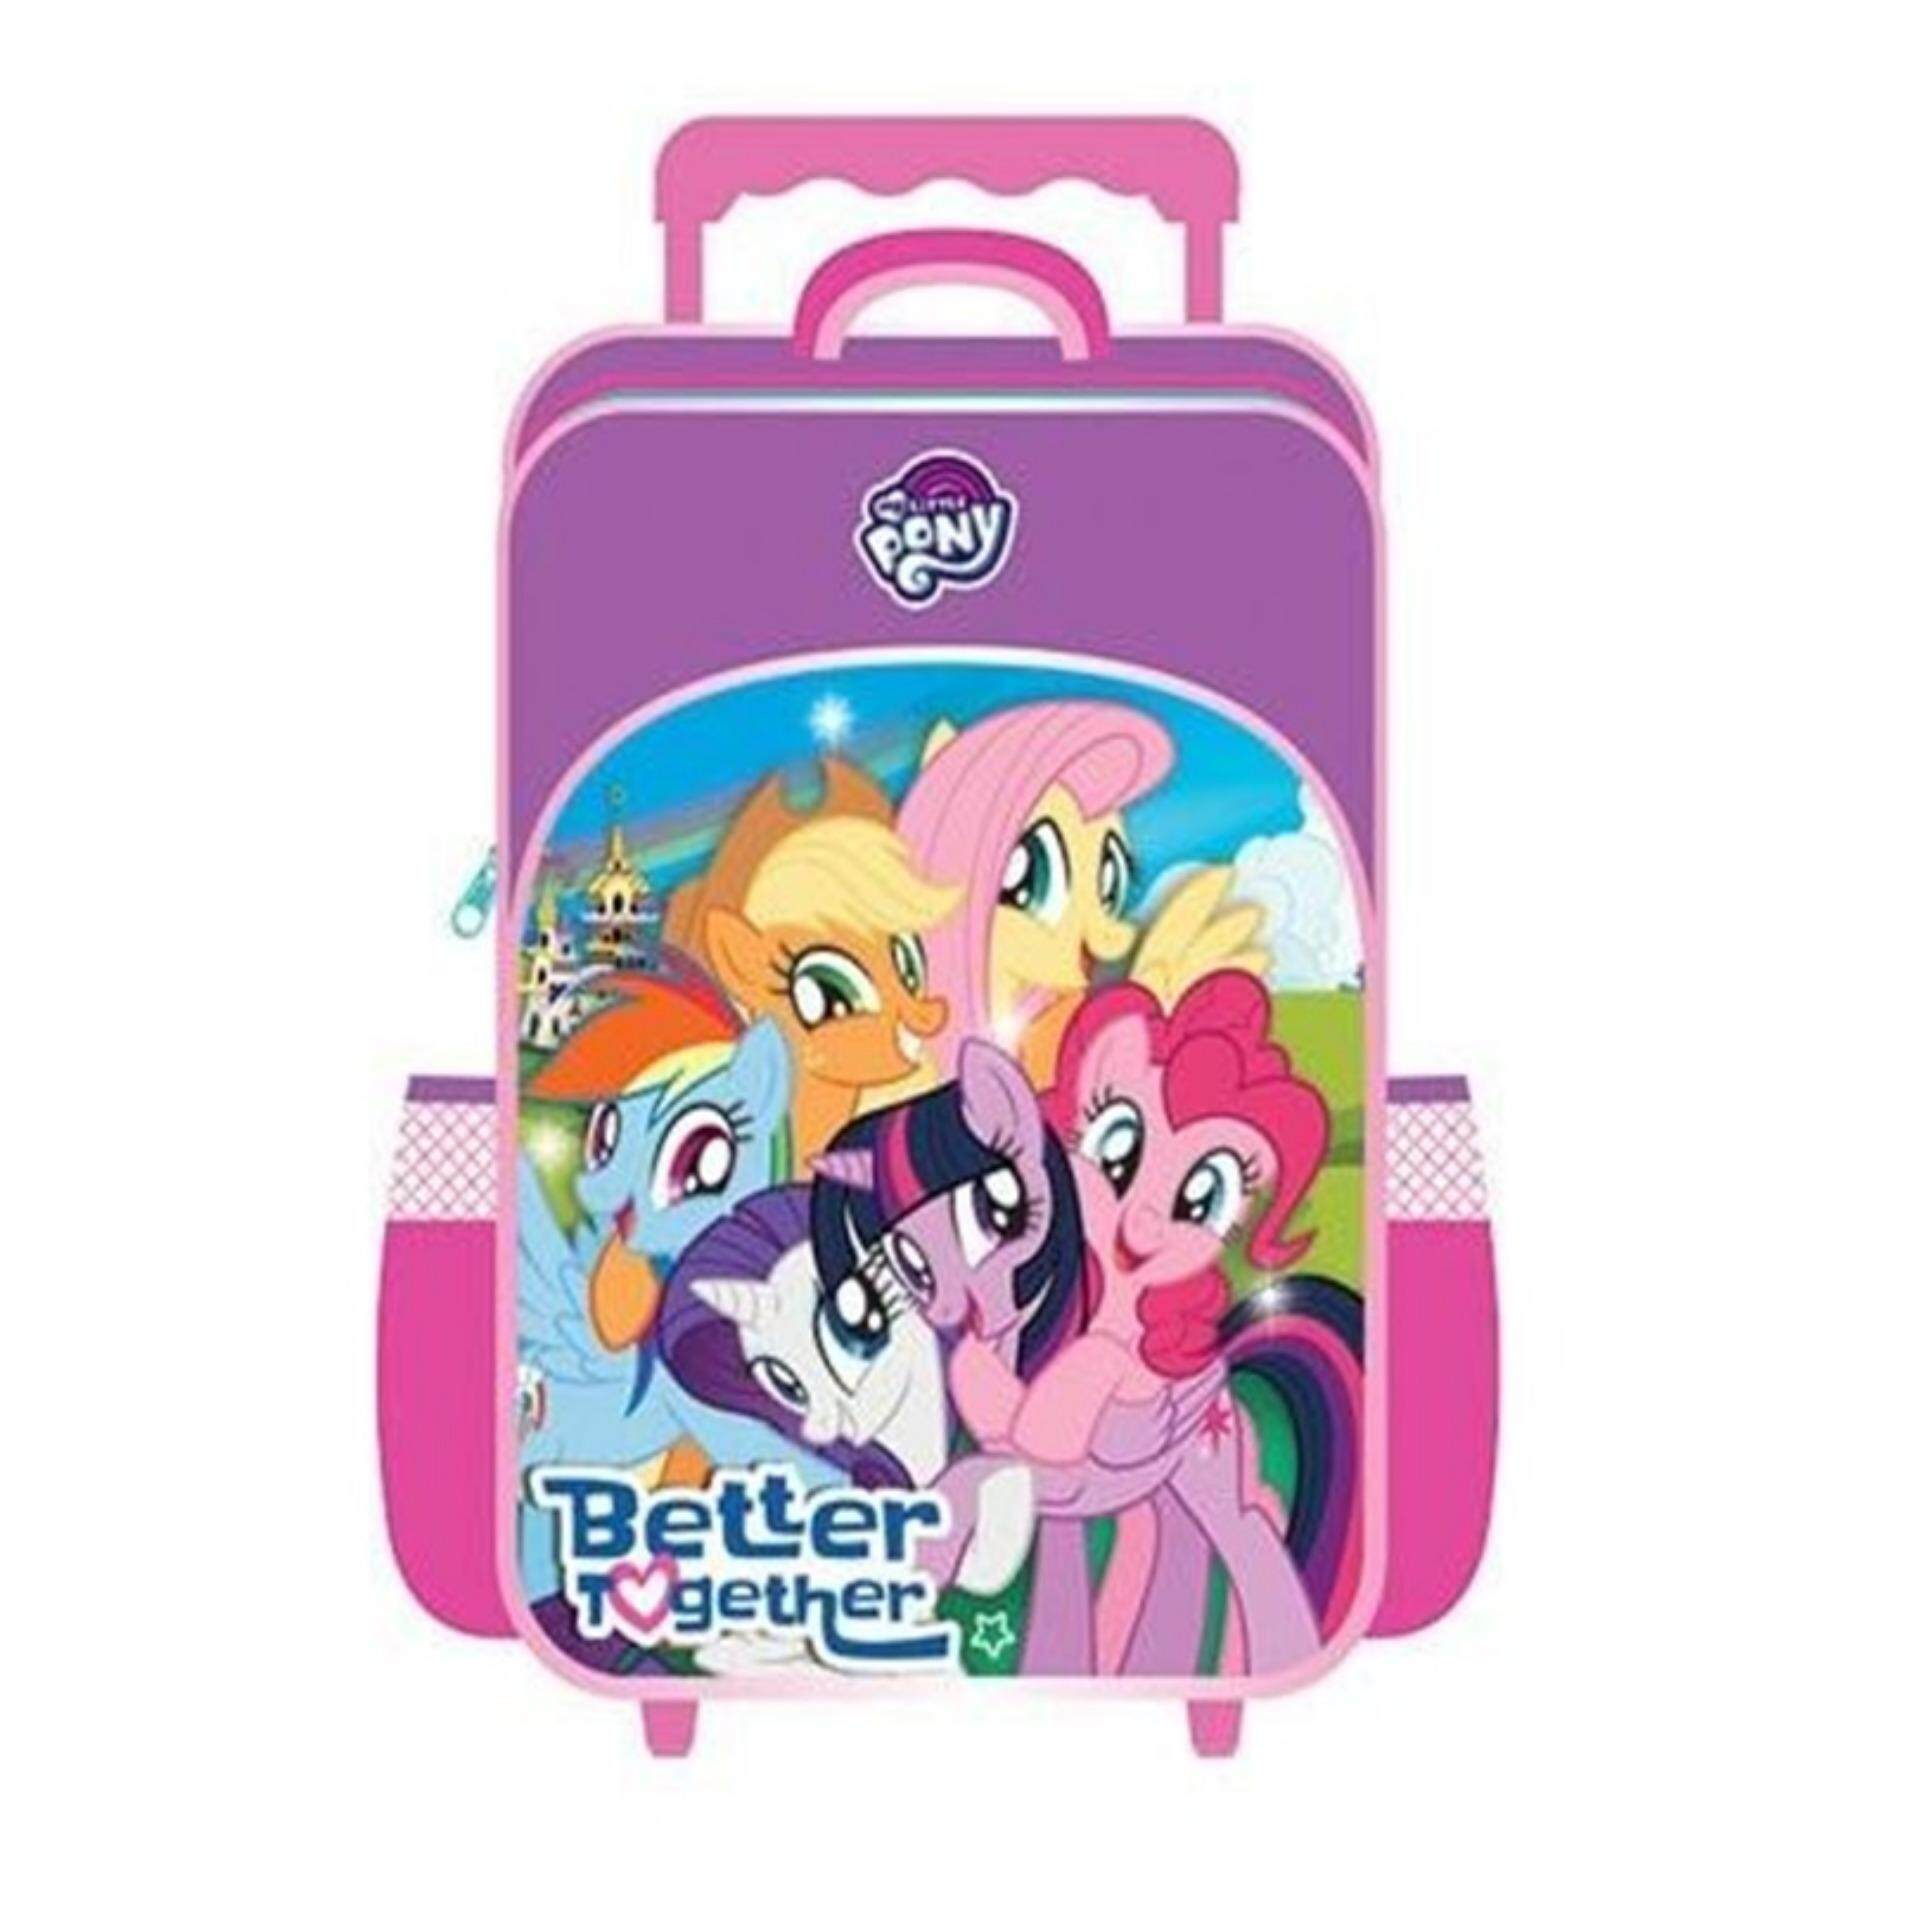 My Little Pony Products For The Best Price In Malaysia